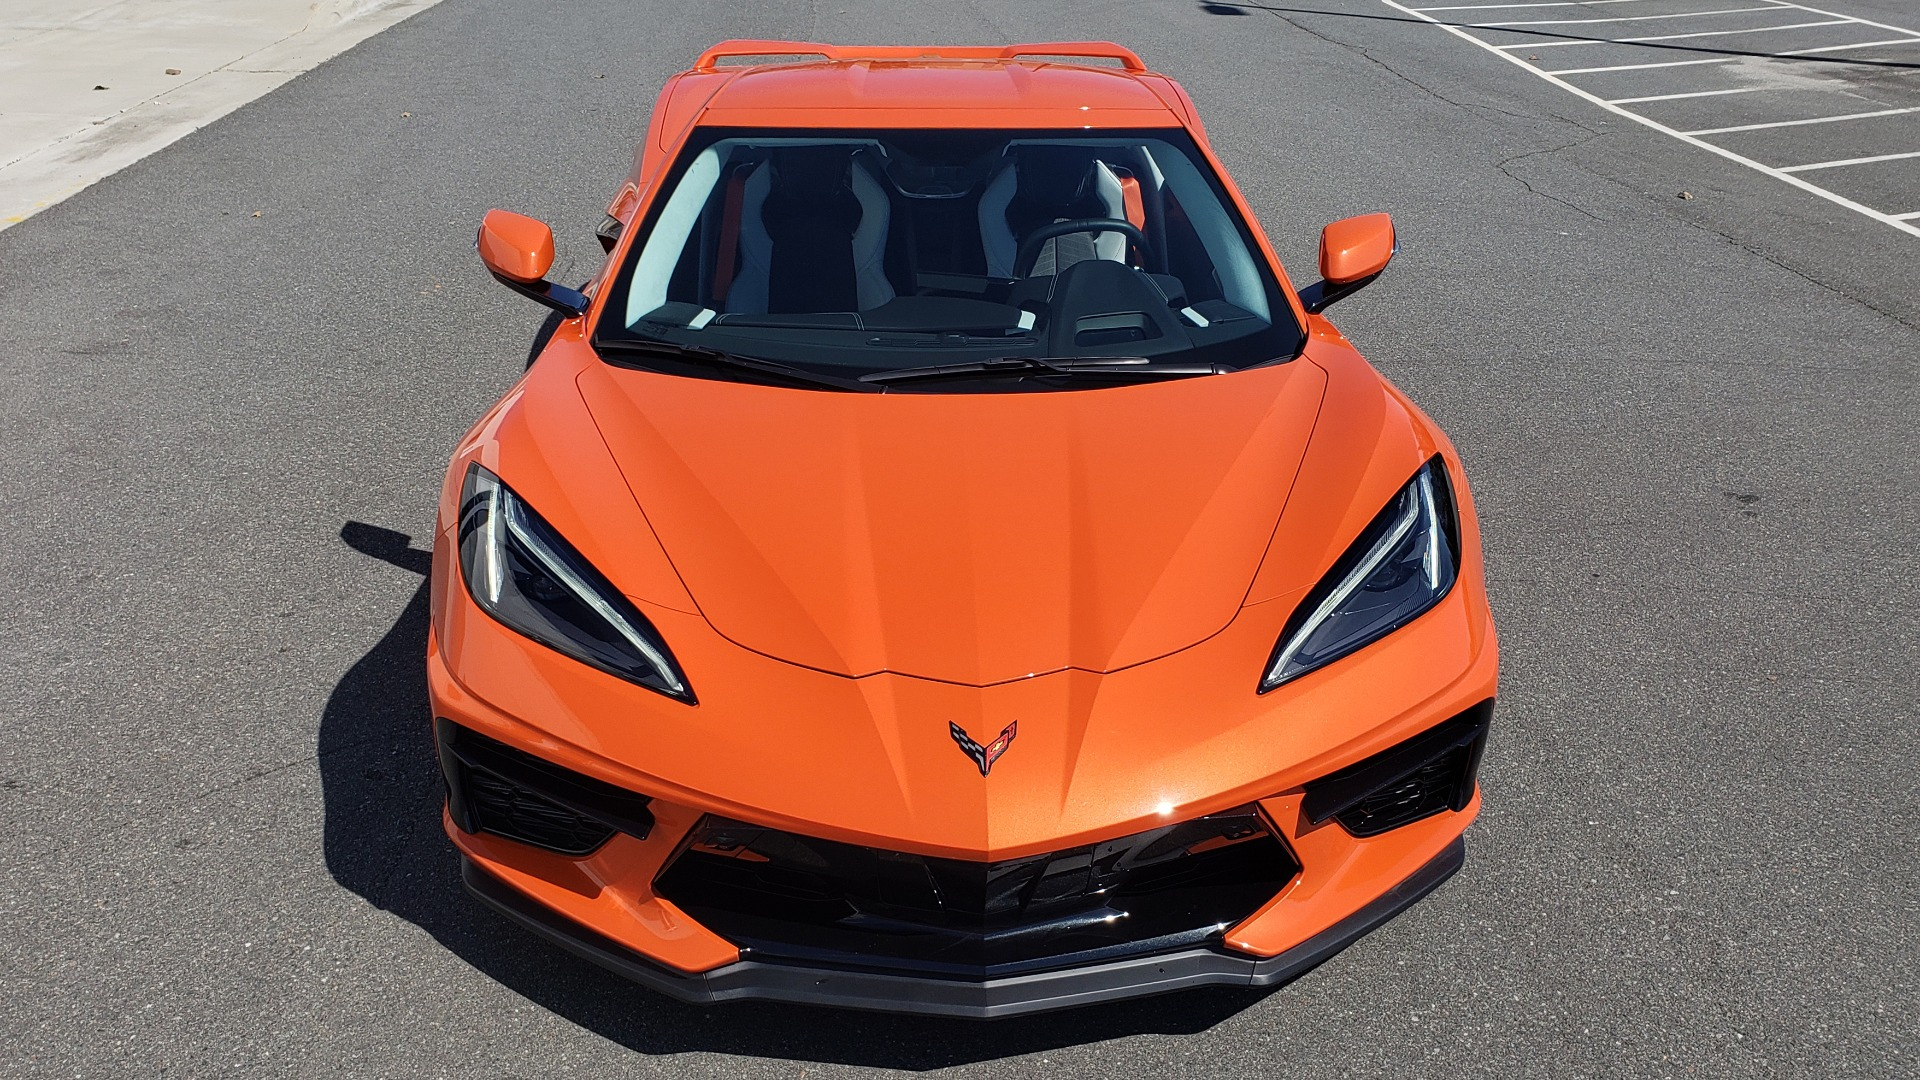 Used 2020 Chevrolet CORVETTE C8 STINGRAY 3LT COUPE / NAV / BOSE / CAMERA / LIKE NEW for sale Sold at Formula Imports in Charlotte NC 28227 34